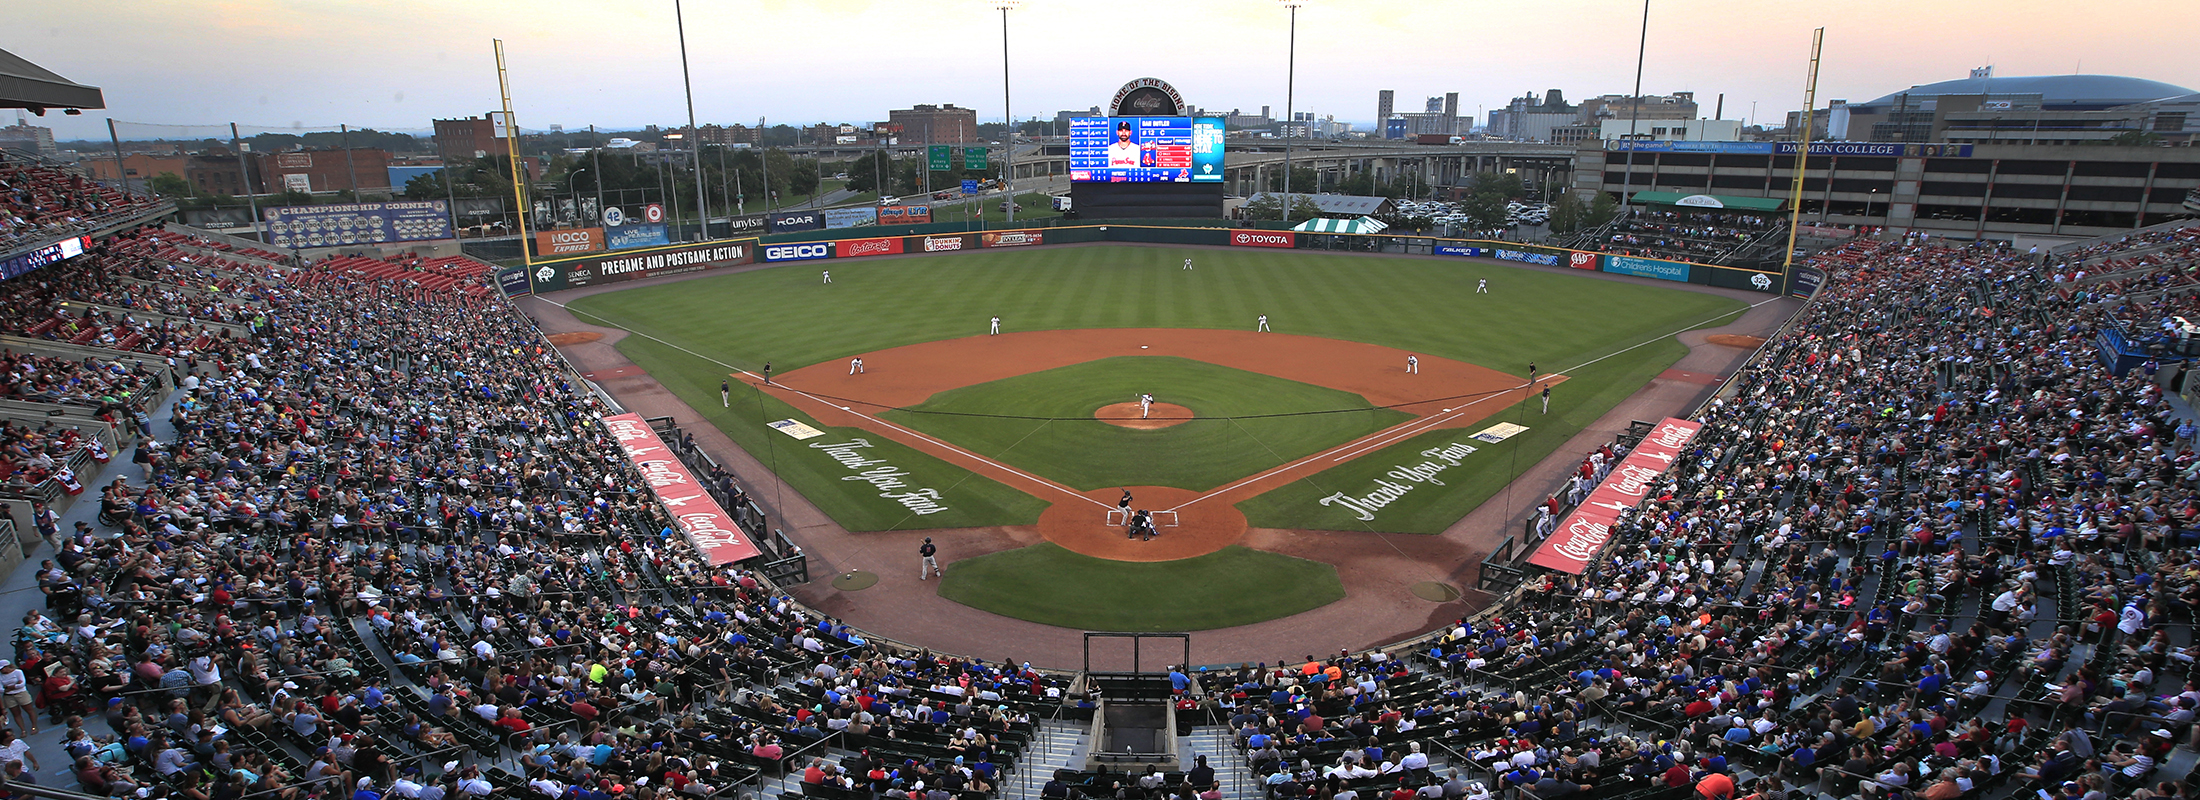 The Bisons open their season in newly named Sahlen Field on April 4 (Harry Scull Jr./News file photo)